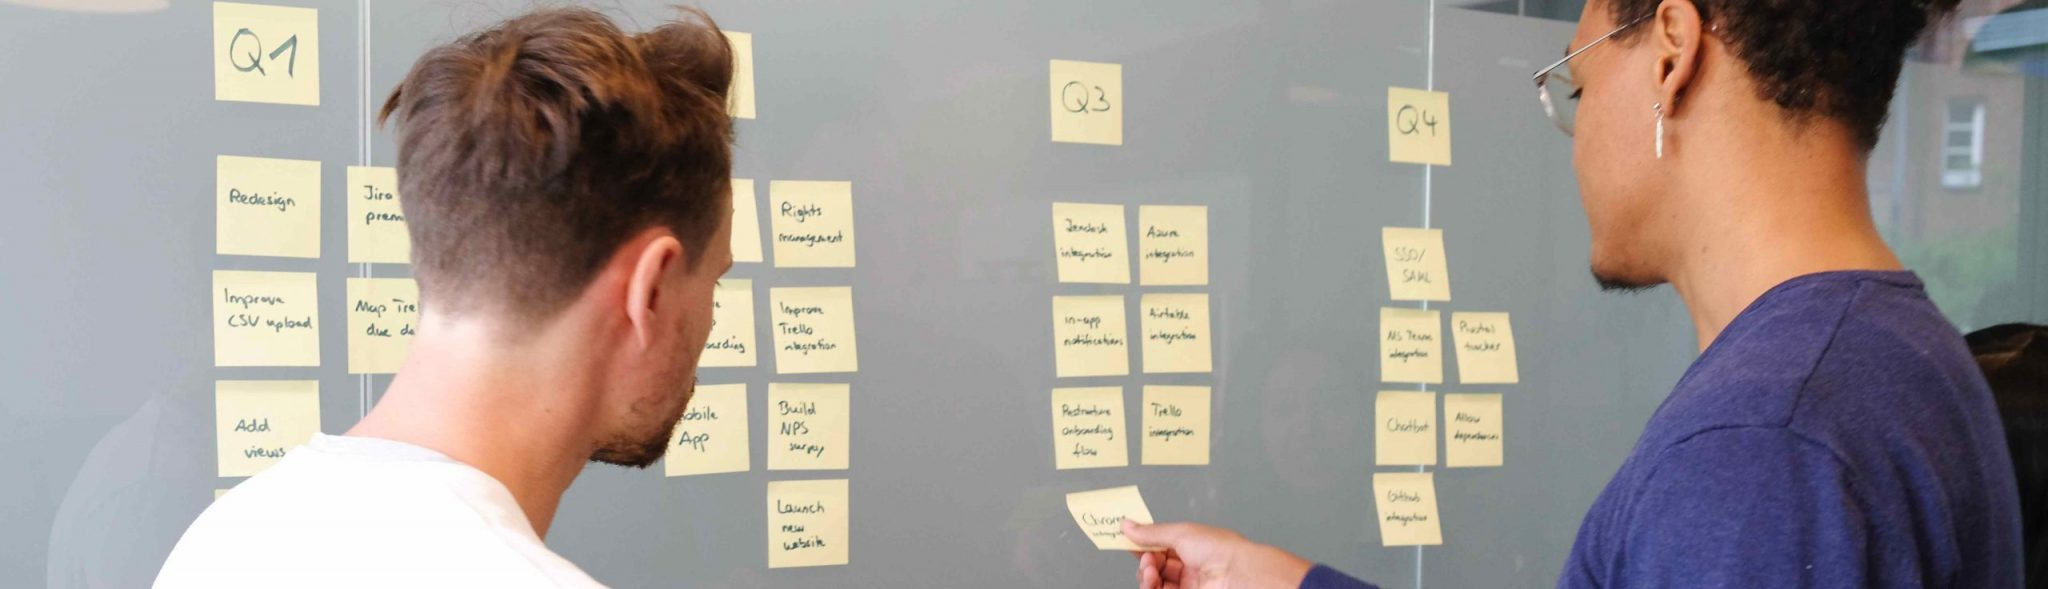 How to build value stream maps using kanban